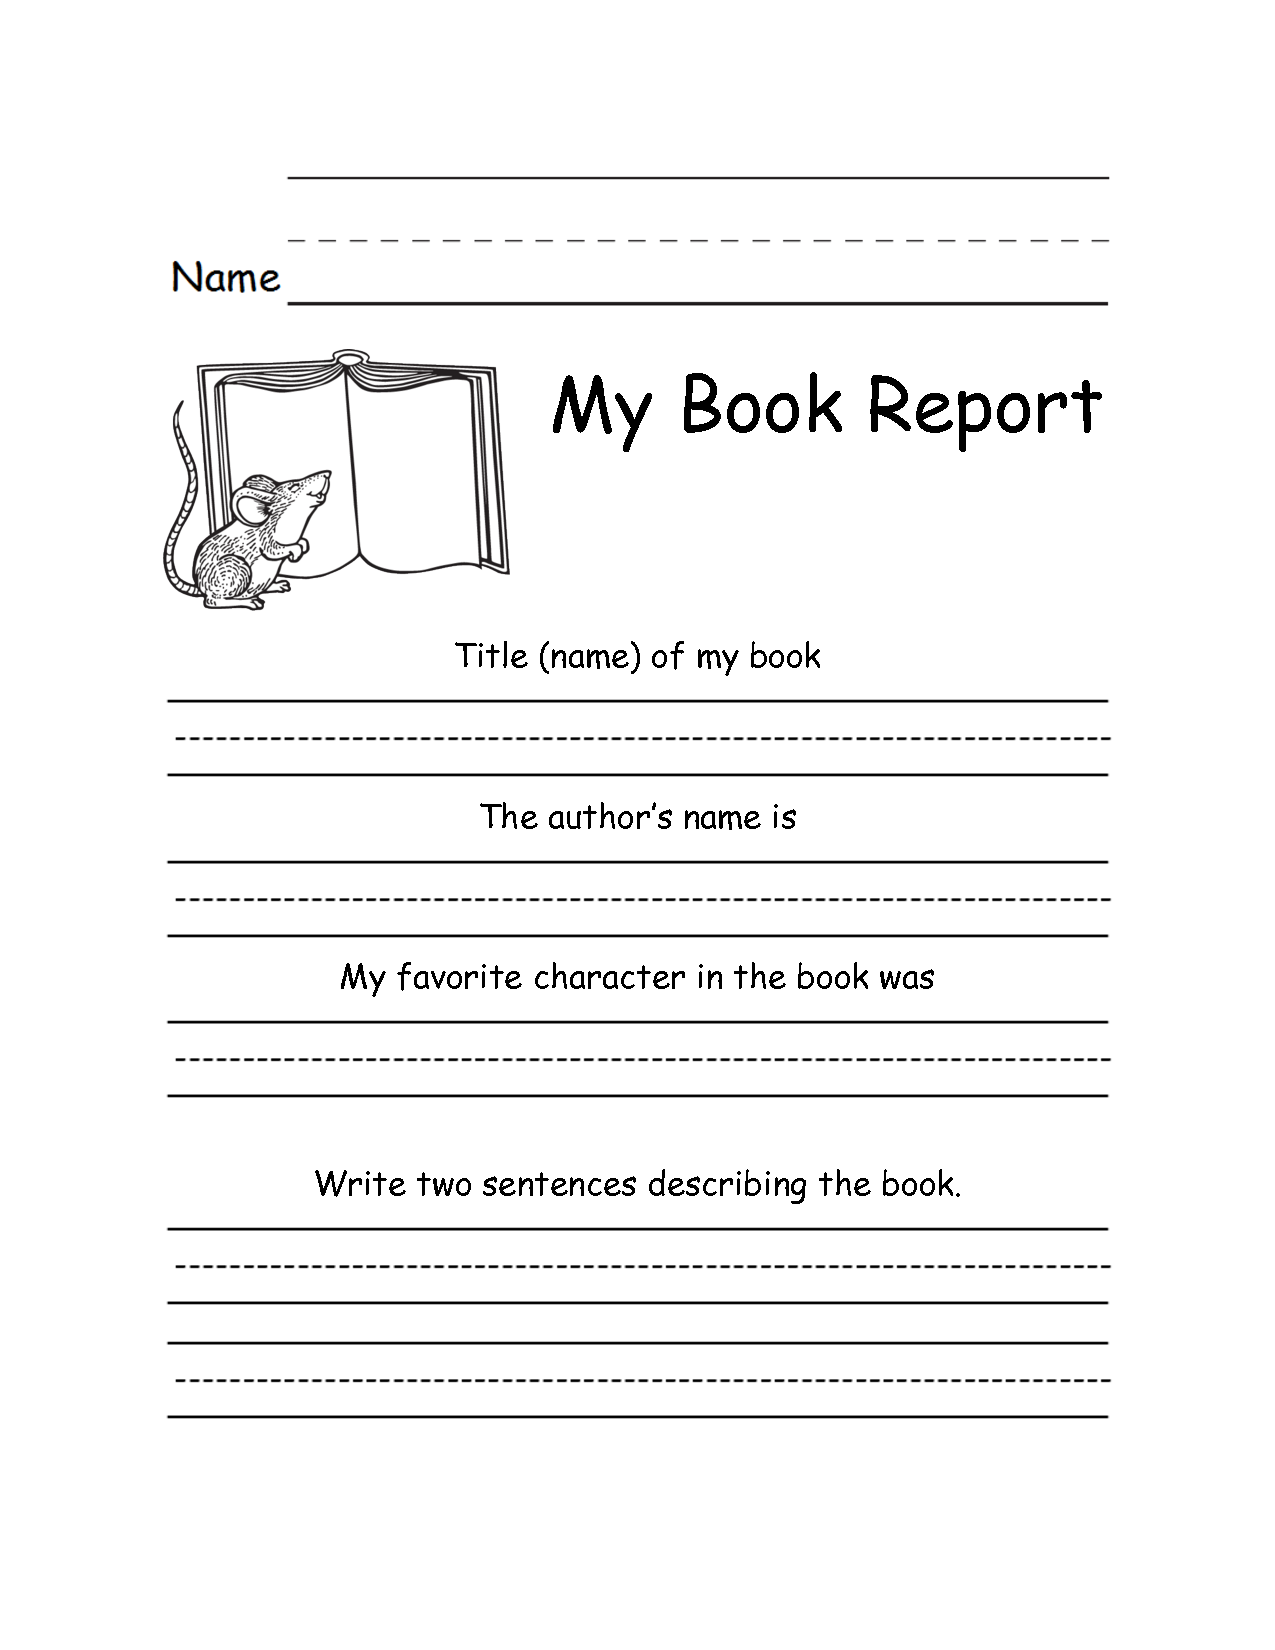 Book Report Forms For 2nd Grade